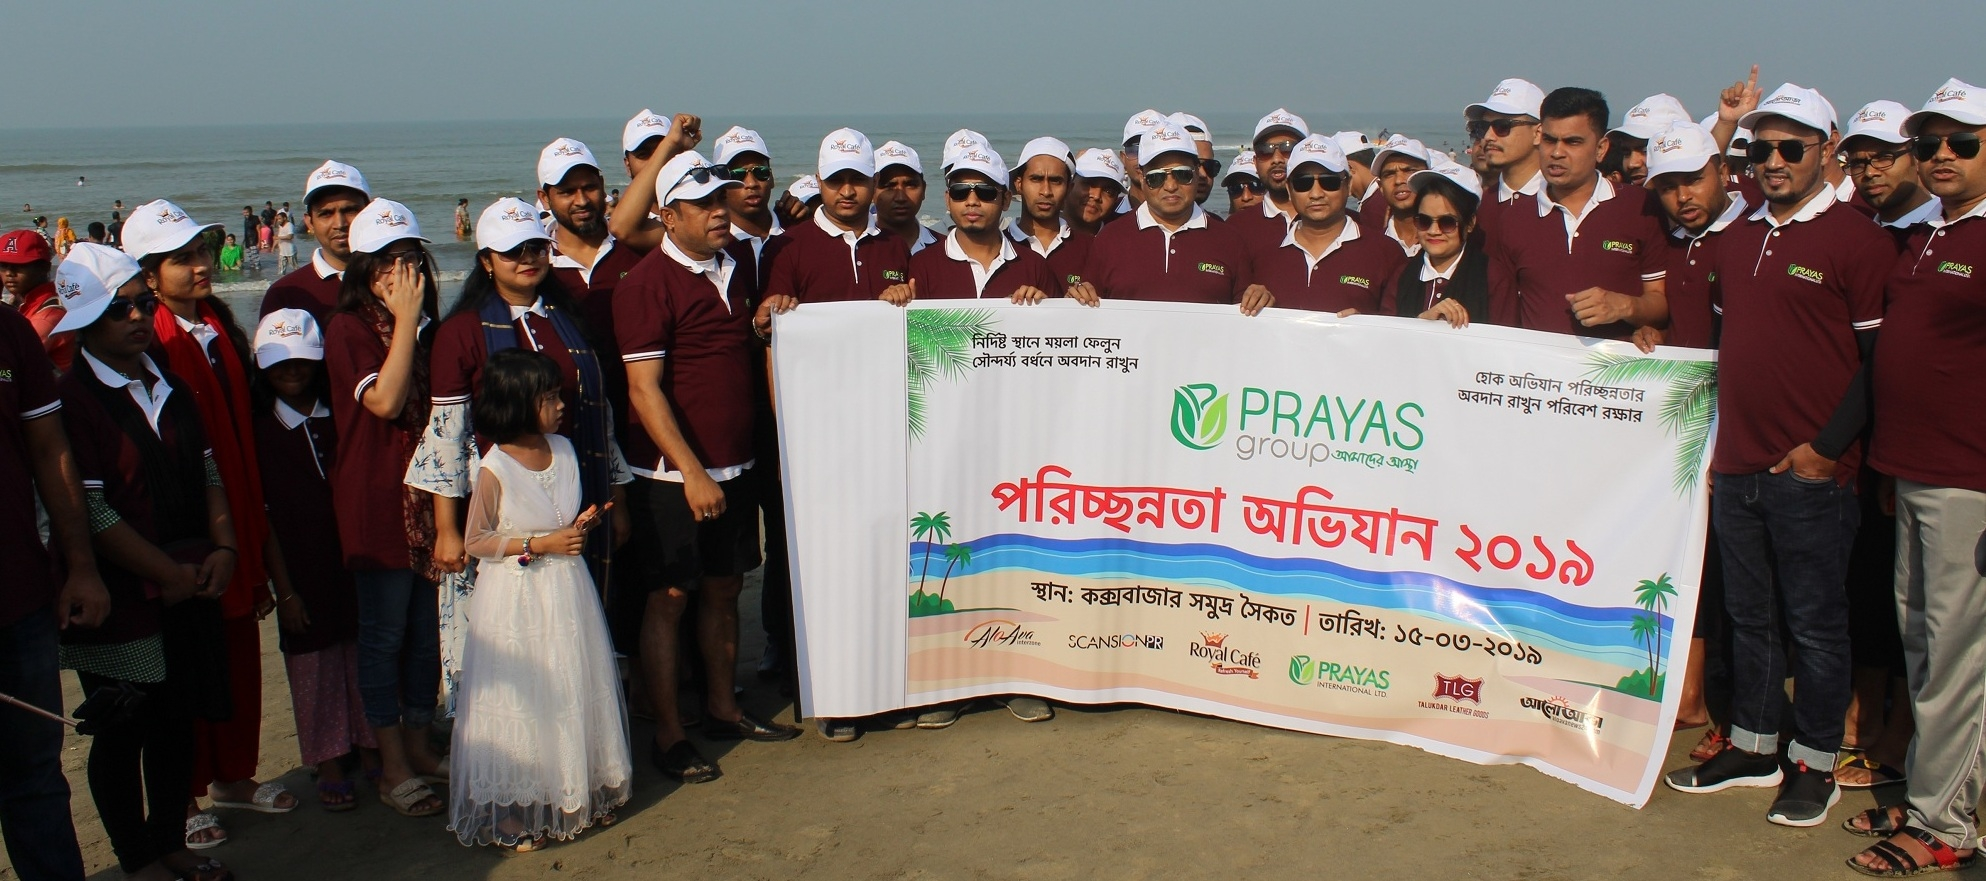 Prayas Group conducts beach cleaning